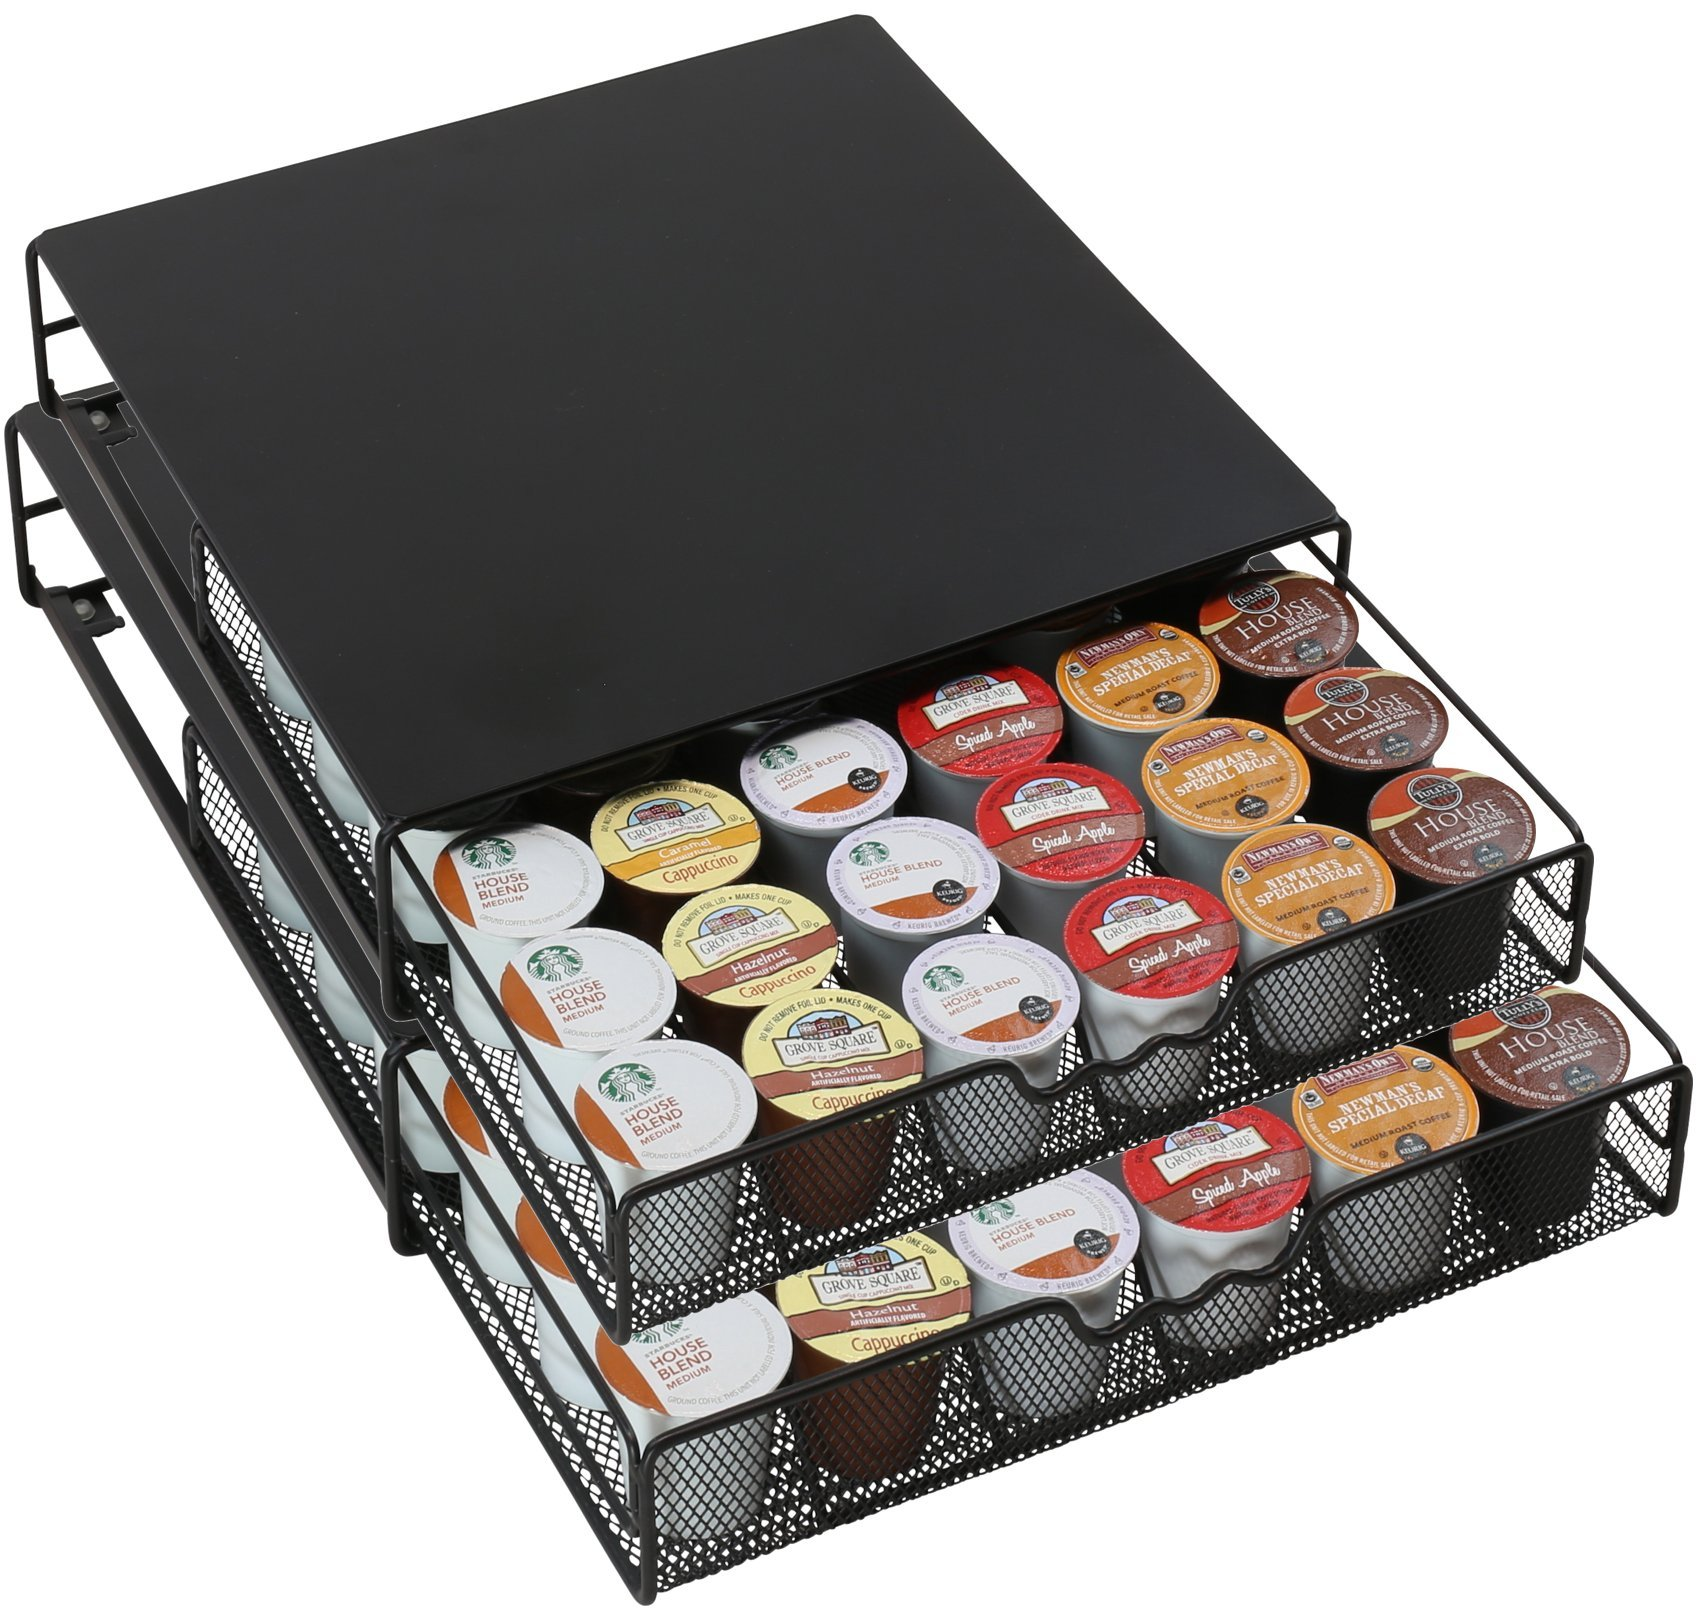 DecoBros K-cup Storage Drawer Holder for Keurig K-cup Coffee Pods by Deco Brothers (Image #4)